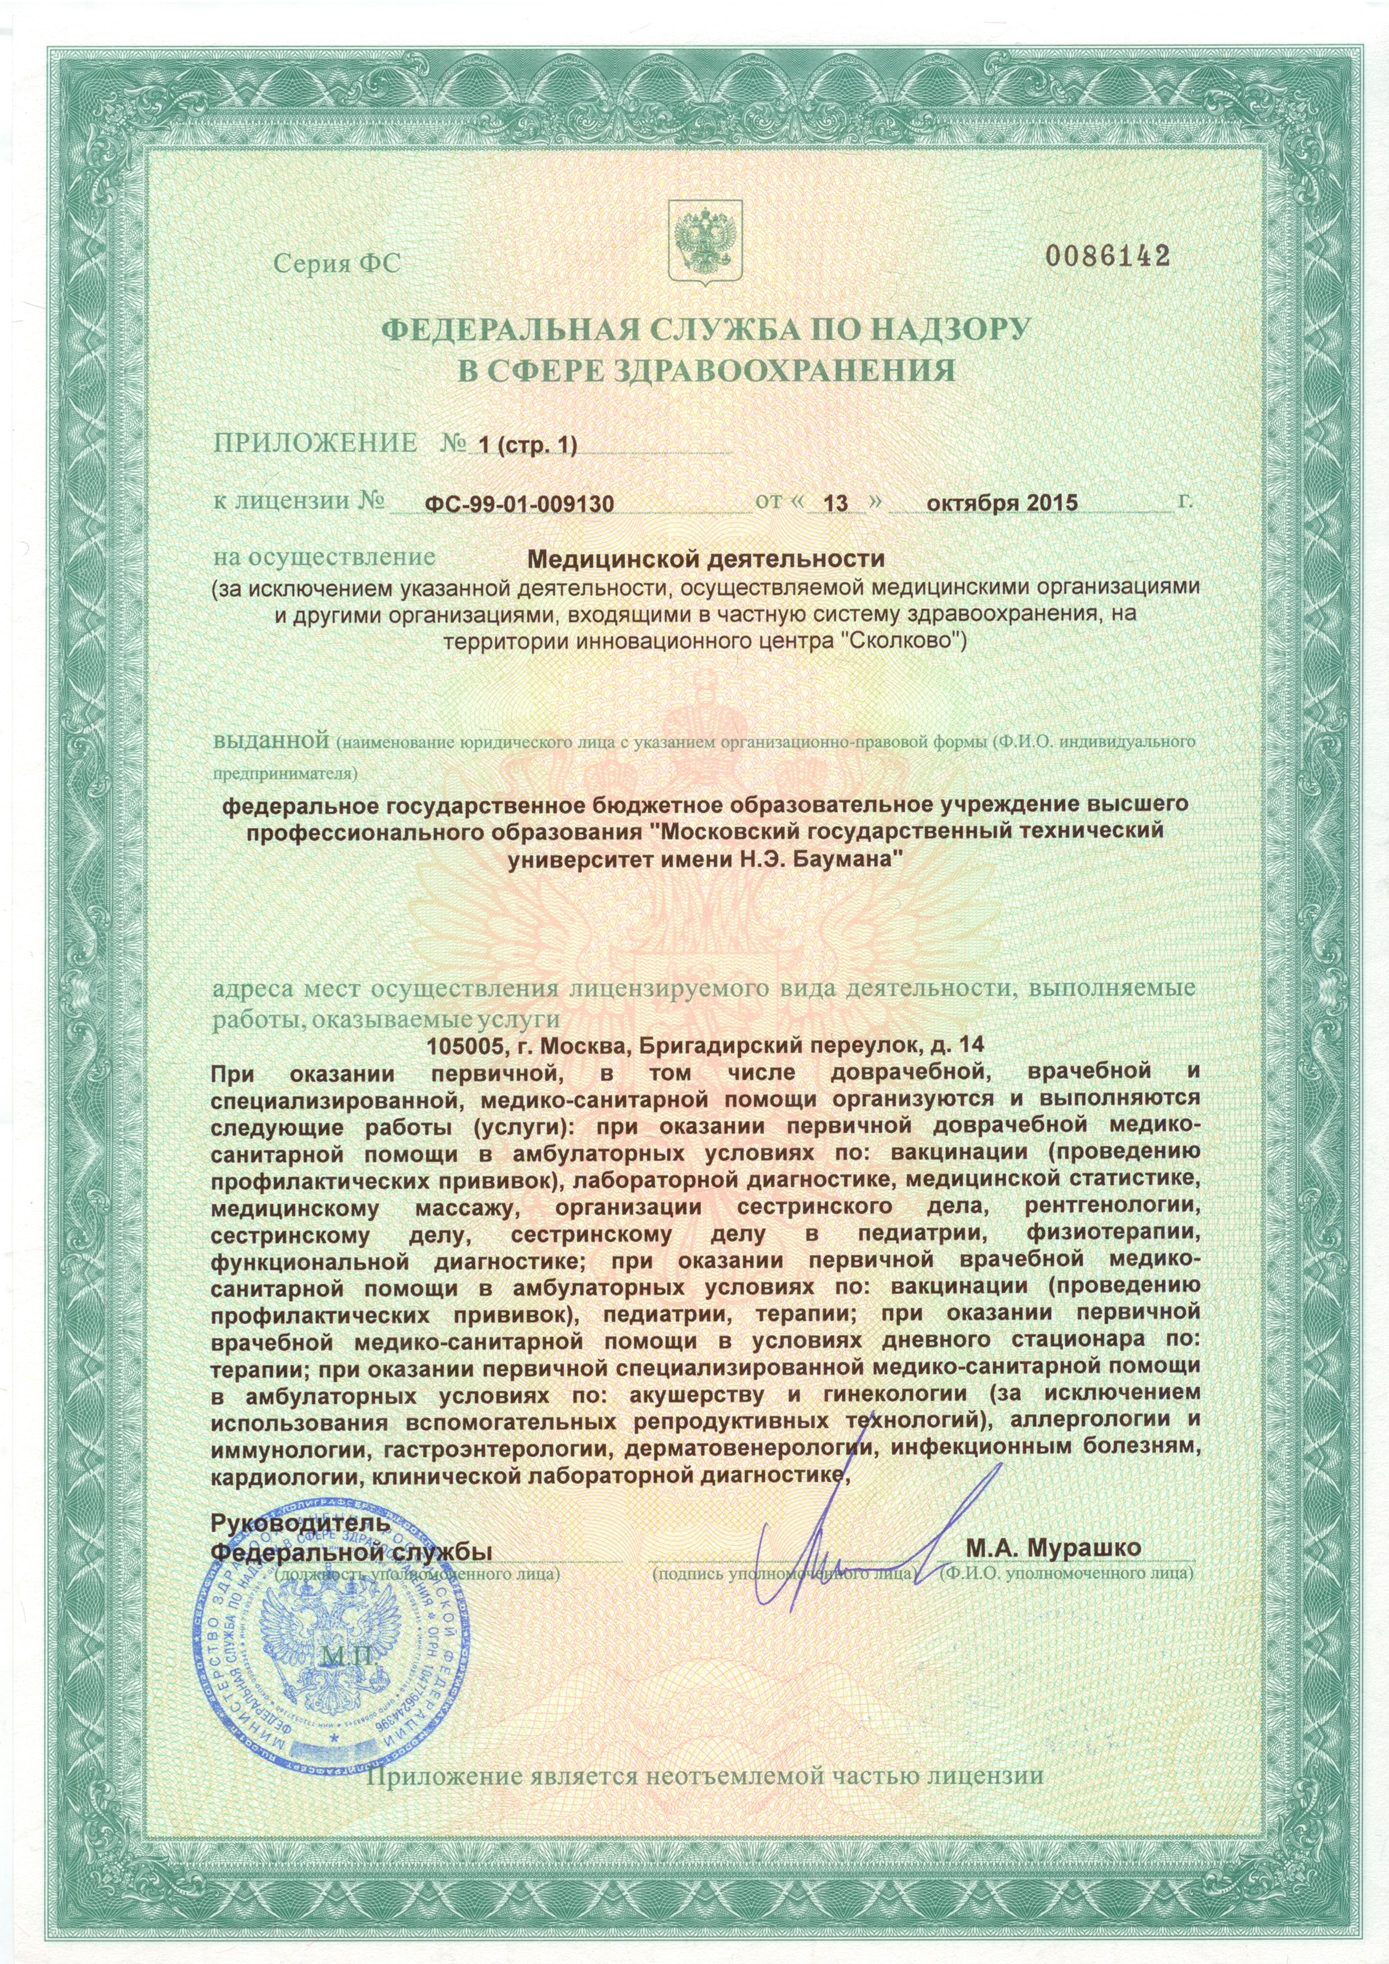 NOMTC license 3.jpg